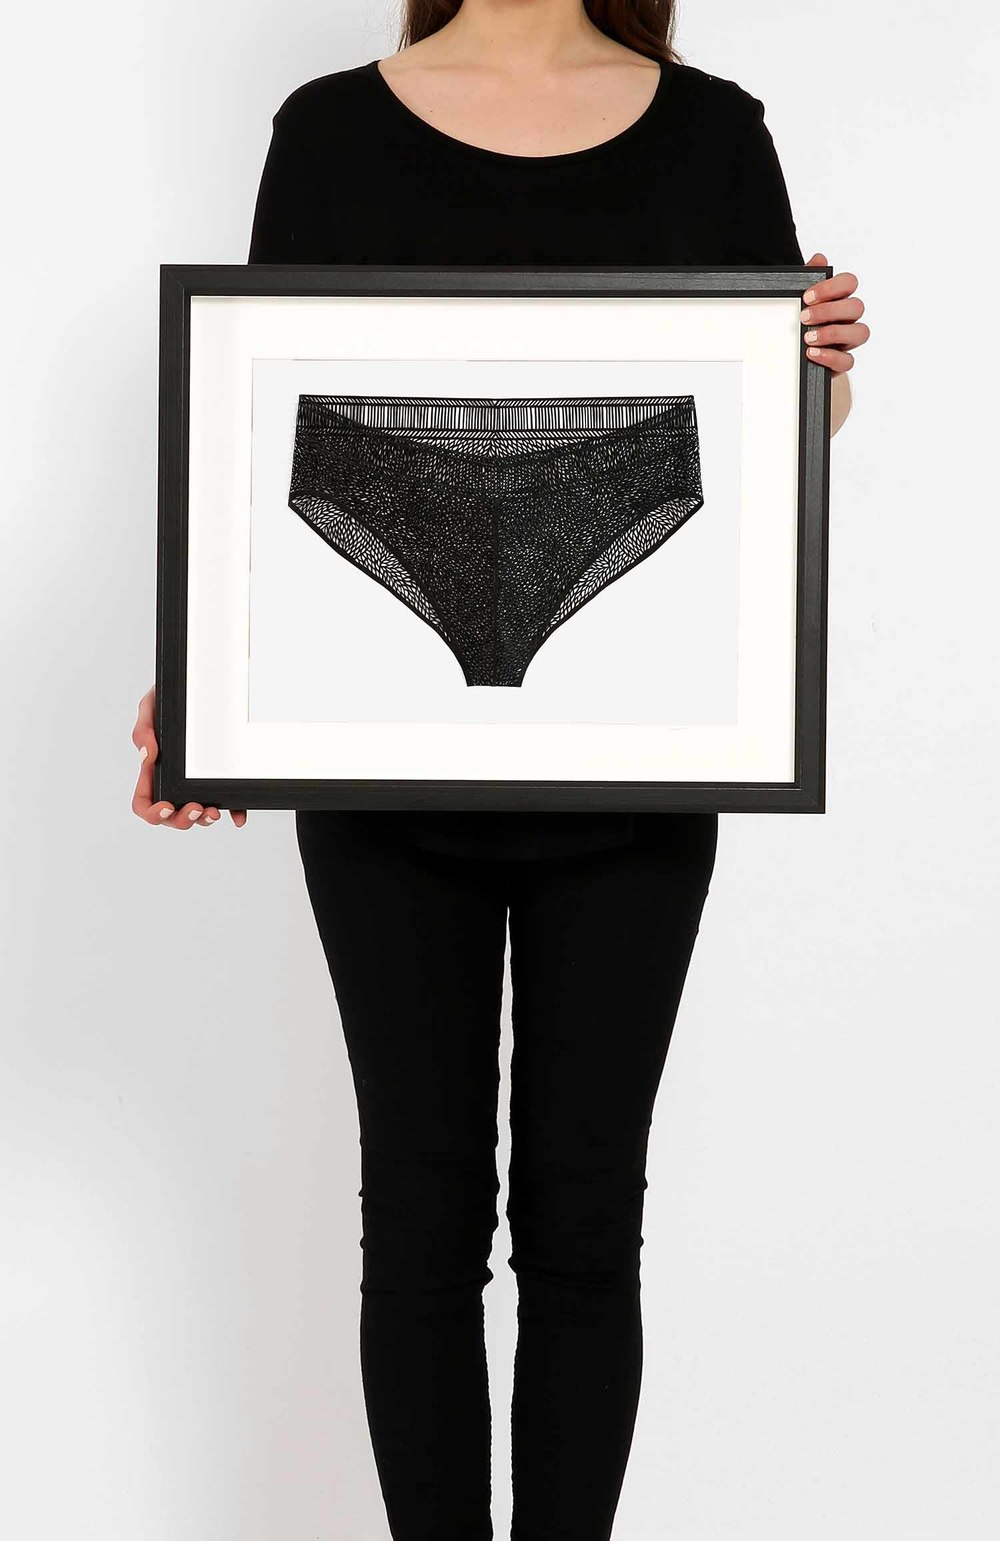 Underwear Black Medium_Framed.jpg